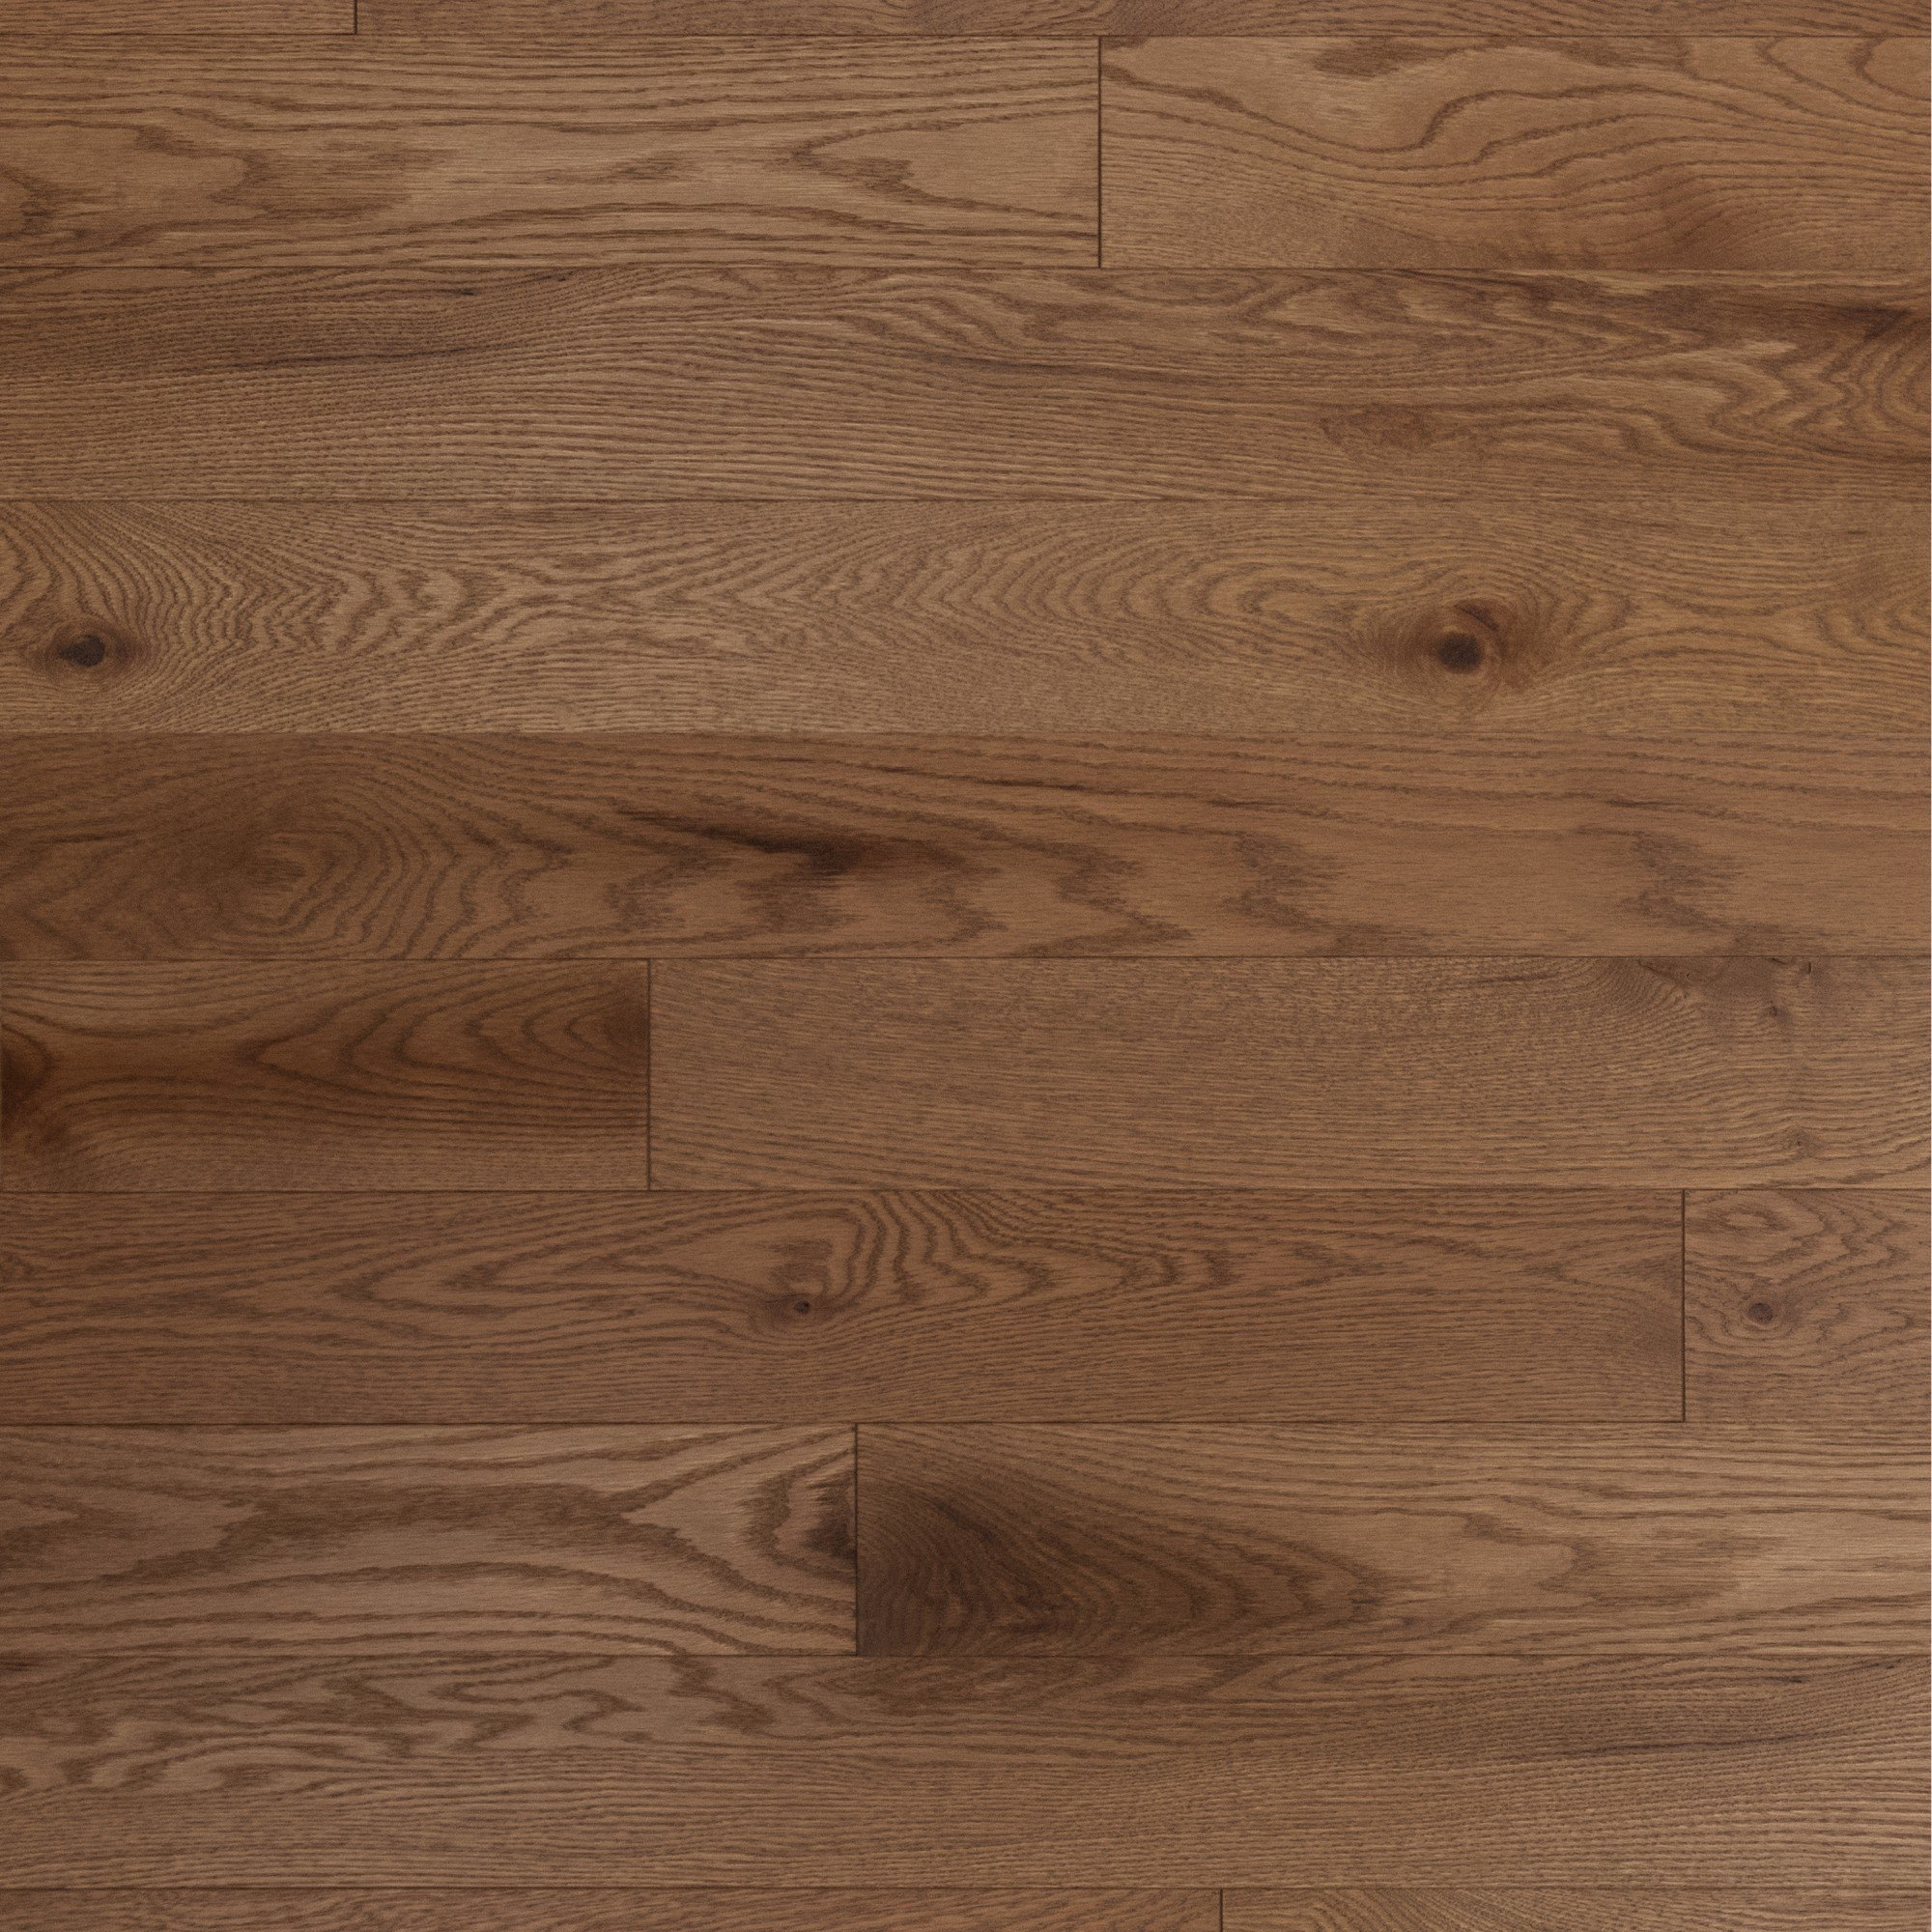 Red Oak Carmel Character Brushed - Floor image